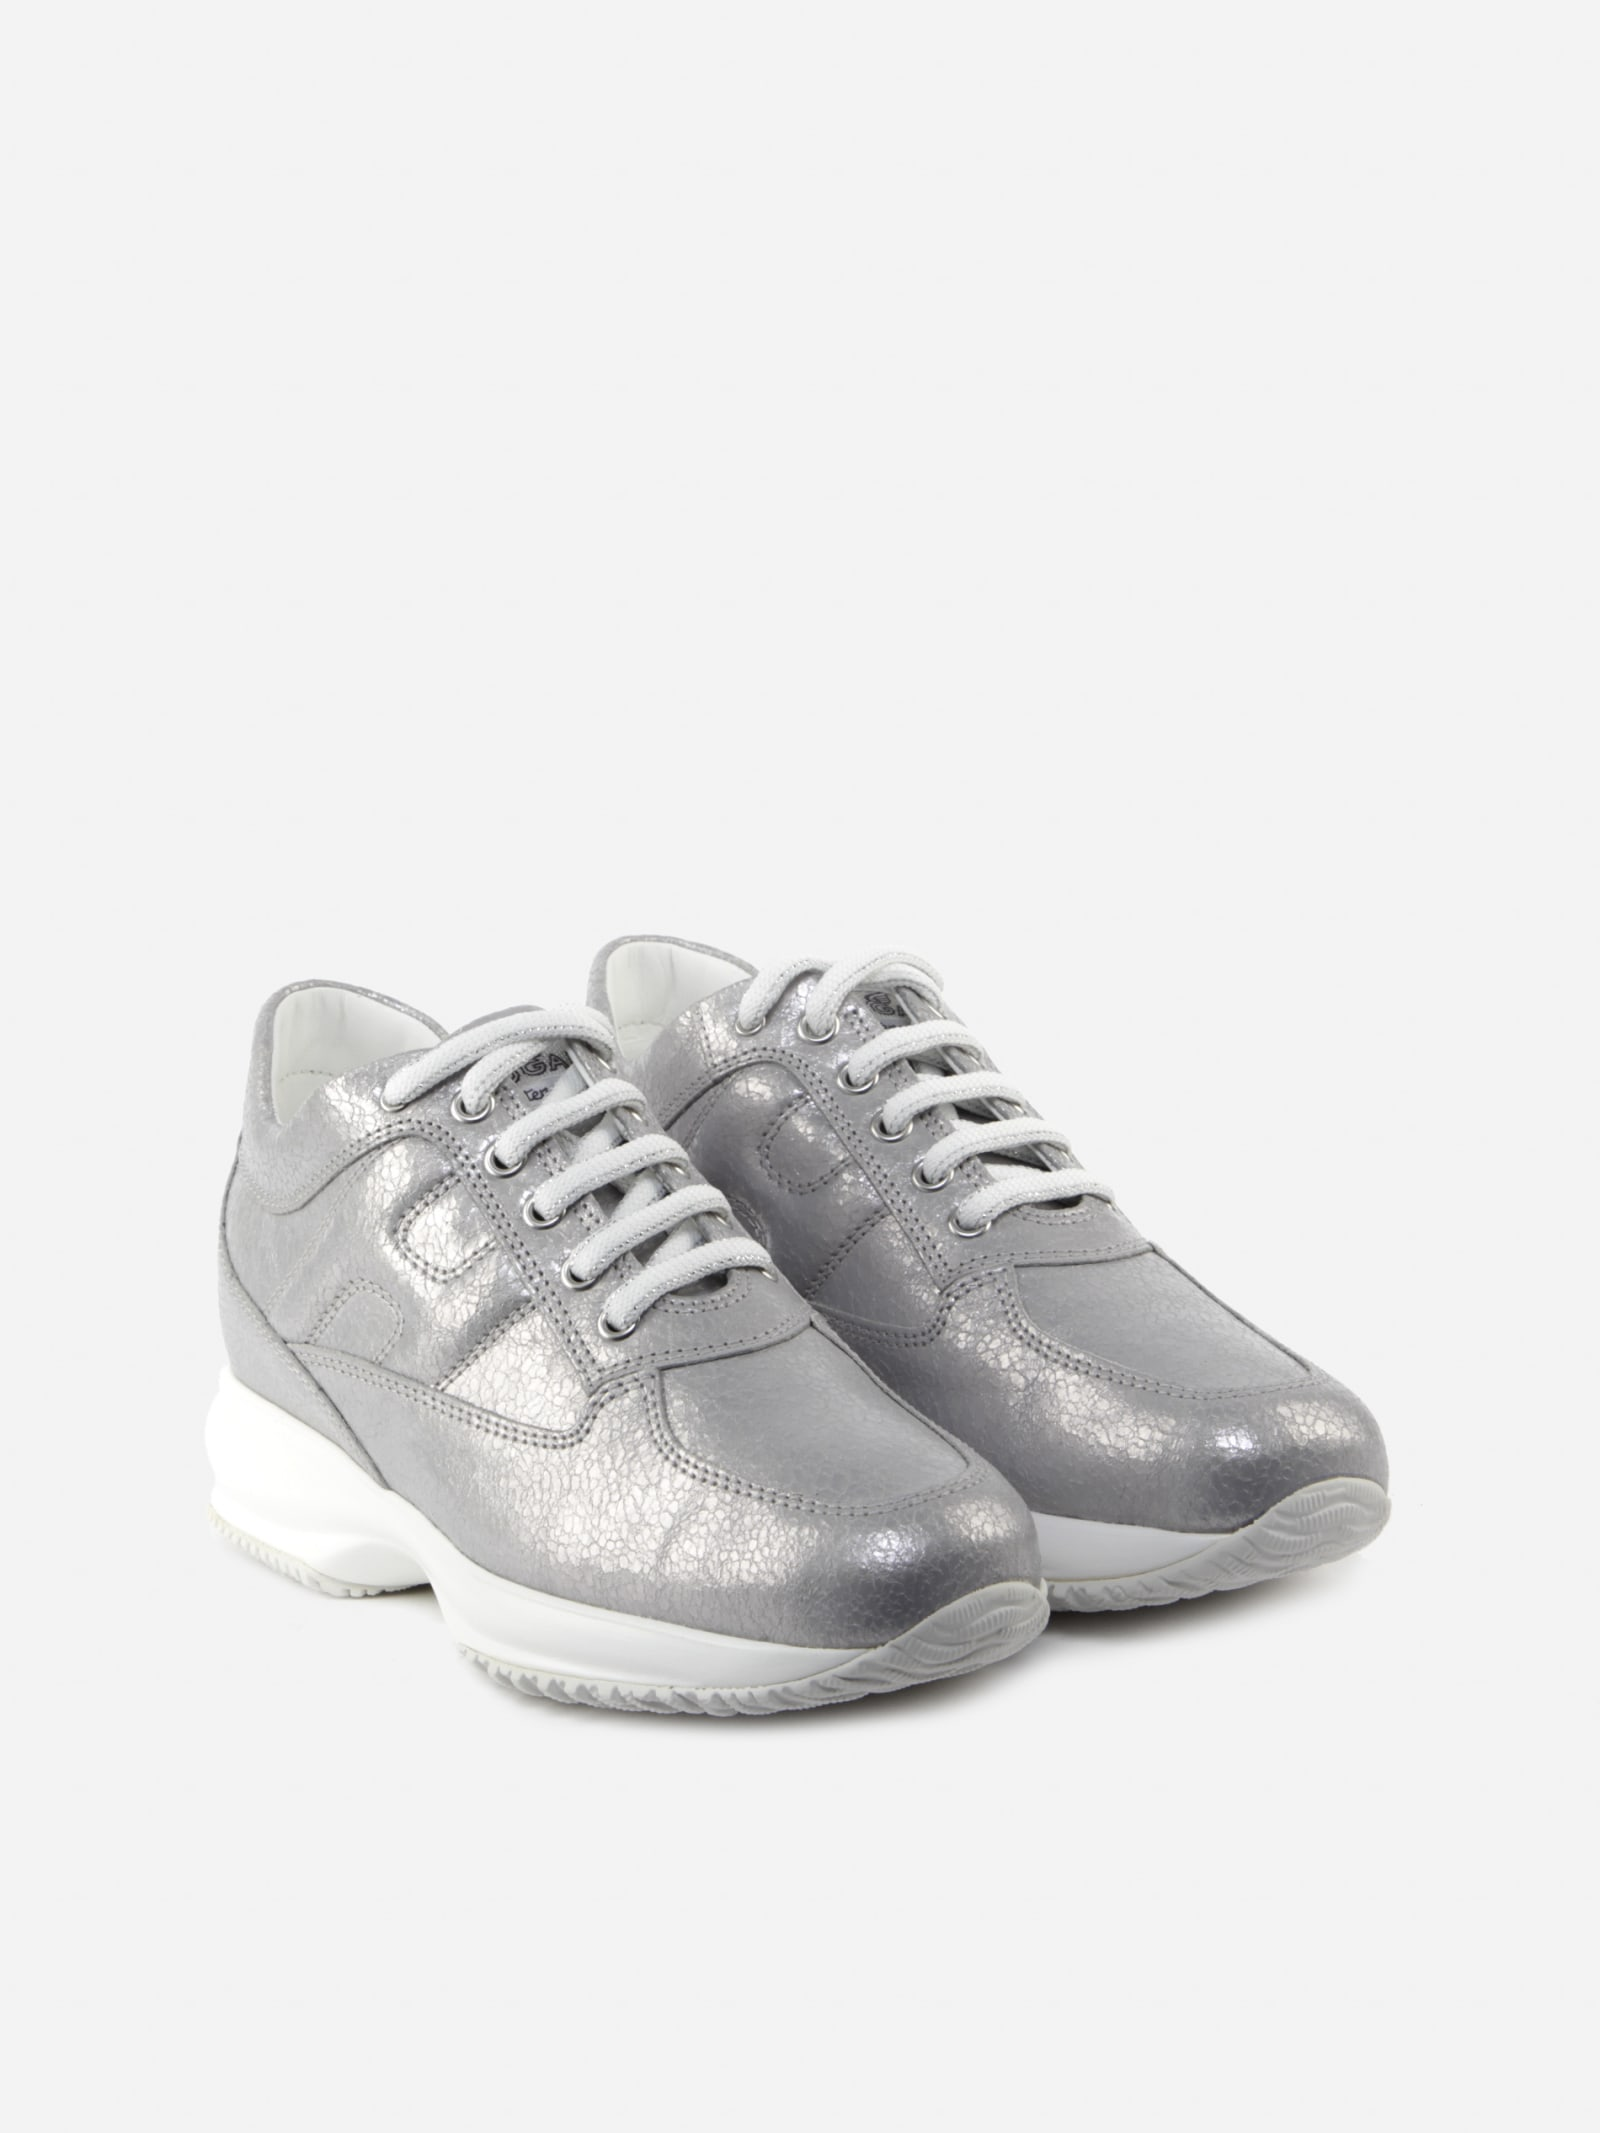 Hogan Interactive Sneakers With A Pearly Finish | Iicf